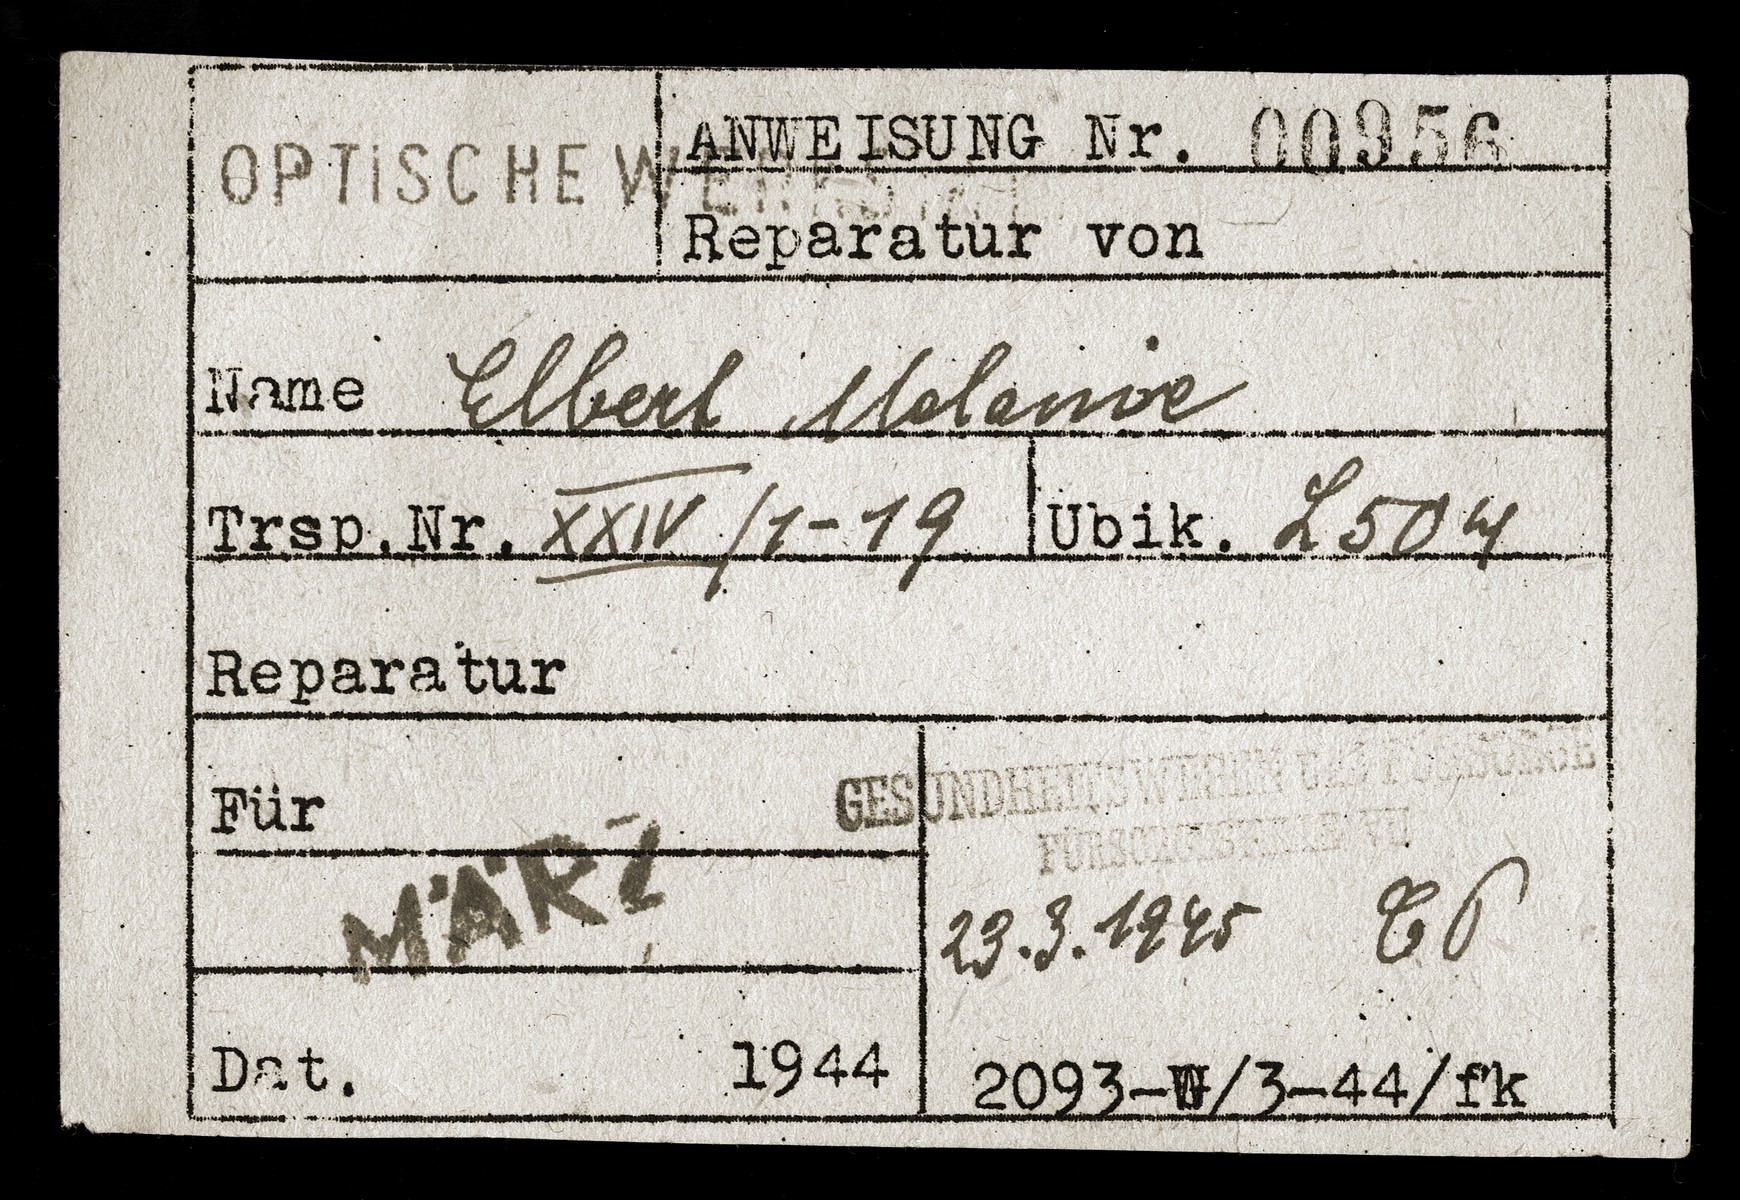 A repair order issued by the optical workshop of the Theresienstadt ghetto health office to inmate Melania Elbert.